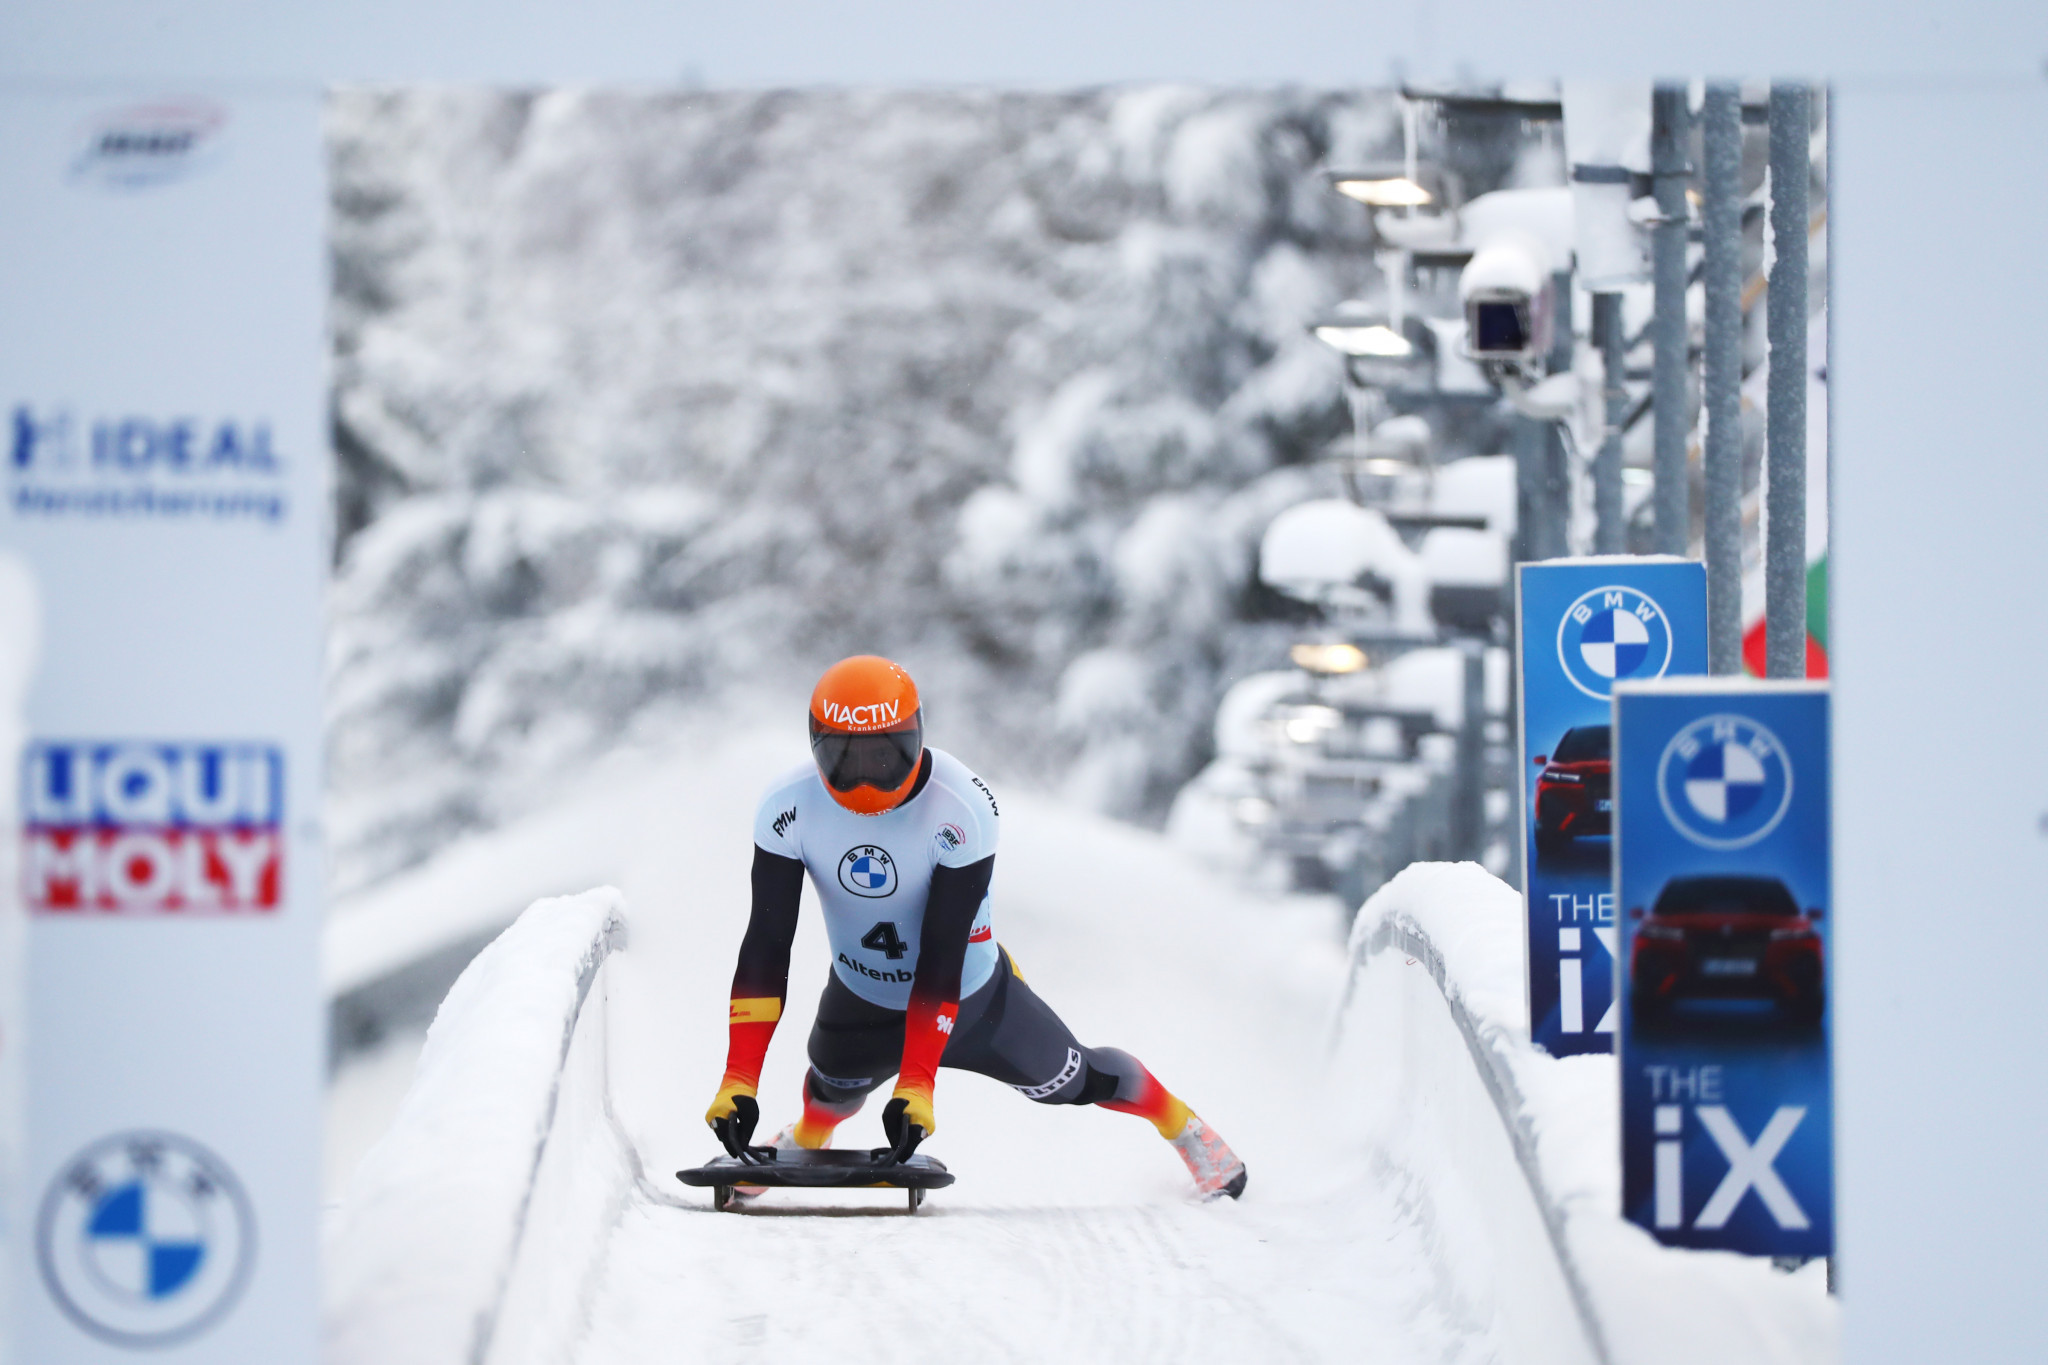 Winterberg will host the 2024 IBSF World Championships, it was announced at the IBSF Congress today ©Getty Images